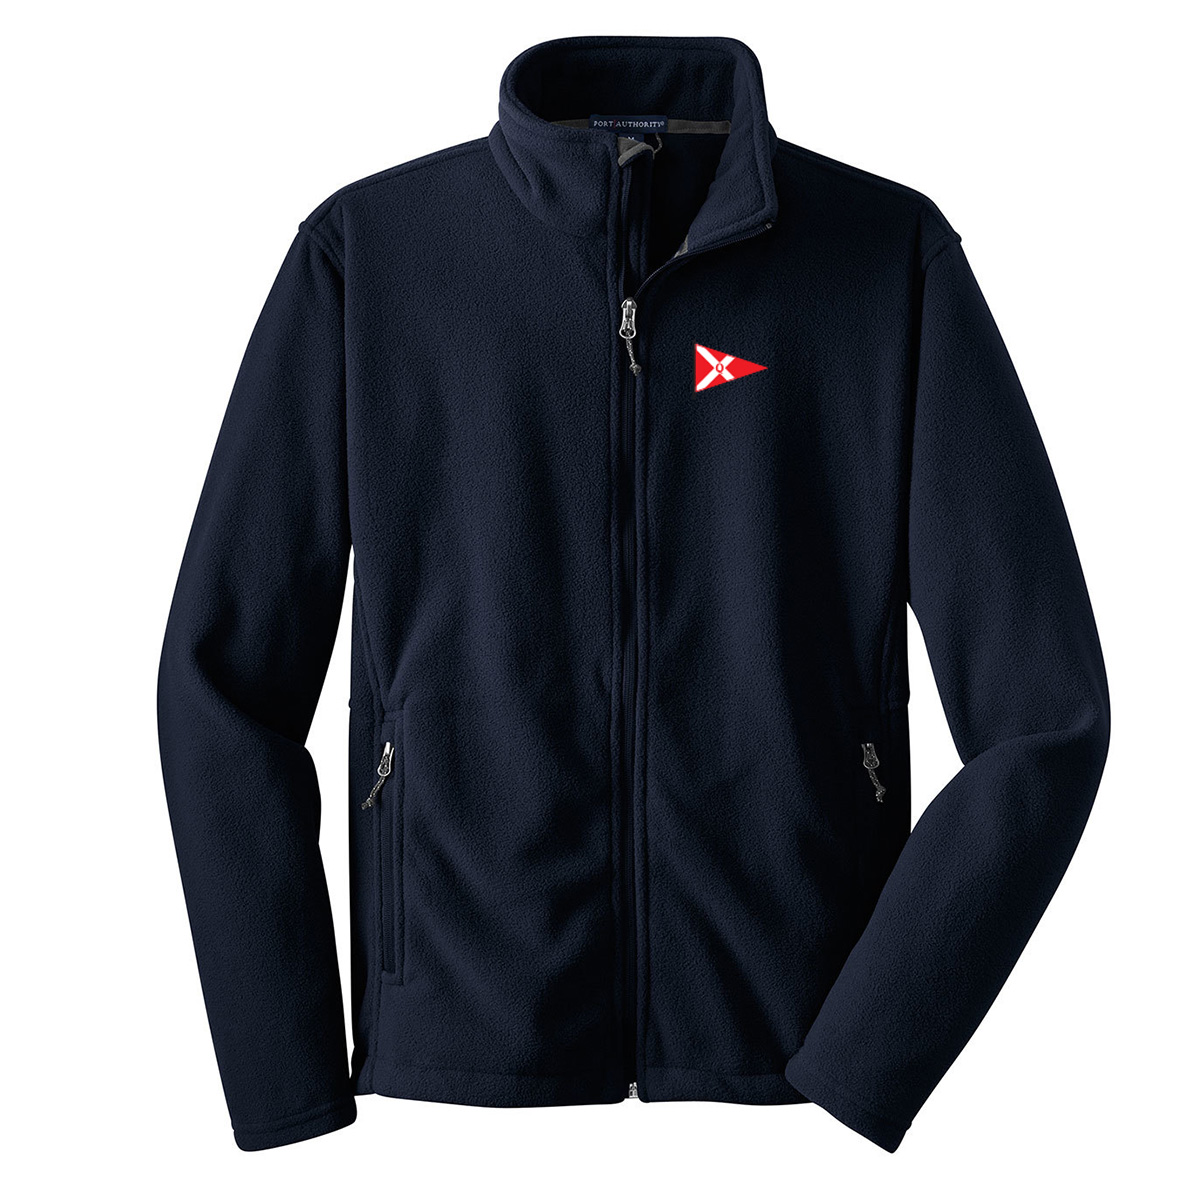 Quissett Yacht Club - Men's Value Fleece Jacket (QYC501)